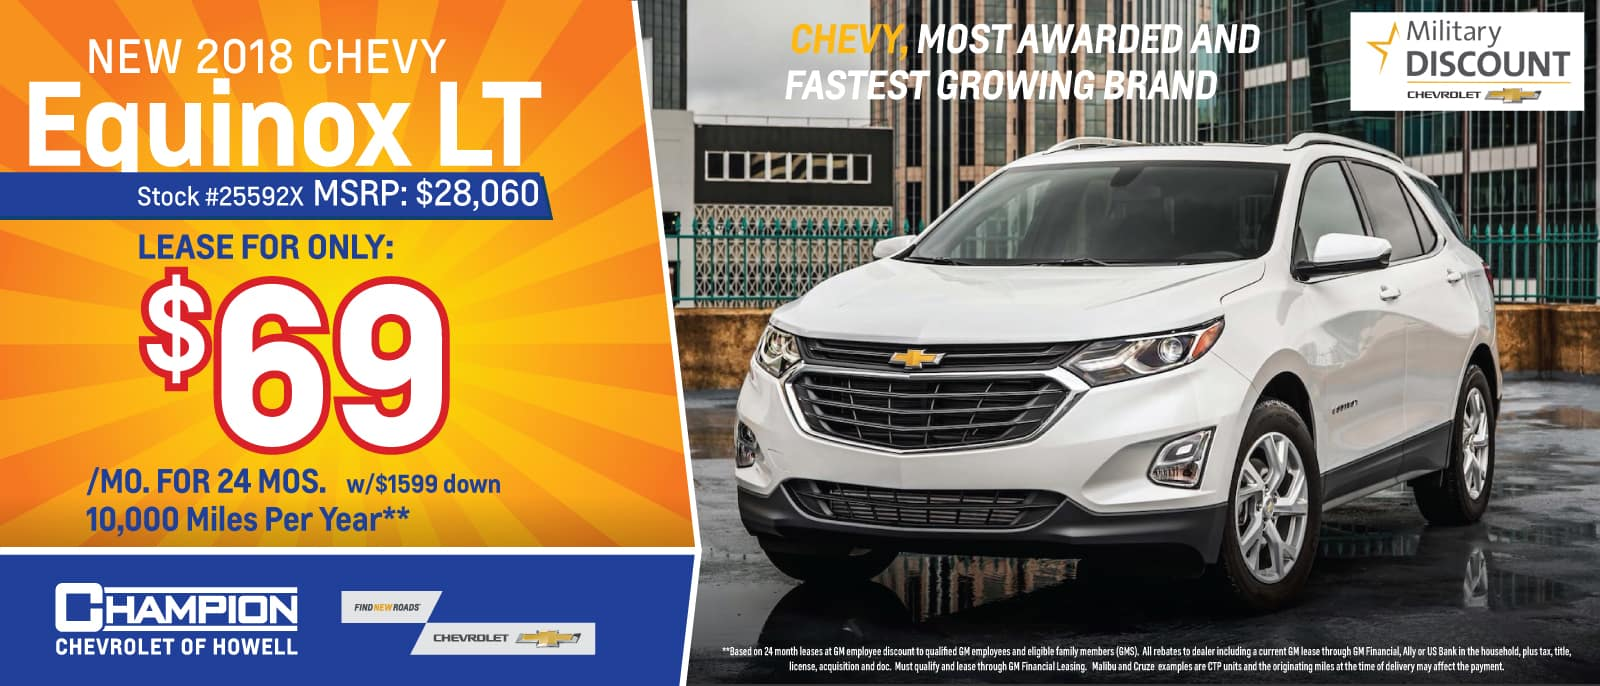 Champion Chevrolet of Howell in MI   New and Used Cars Welcome to our